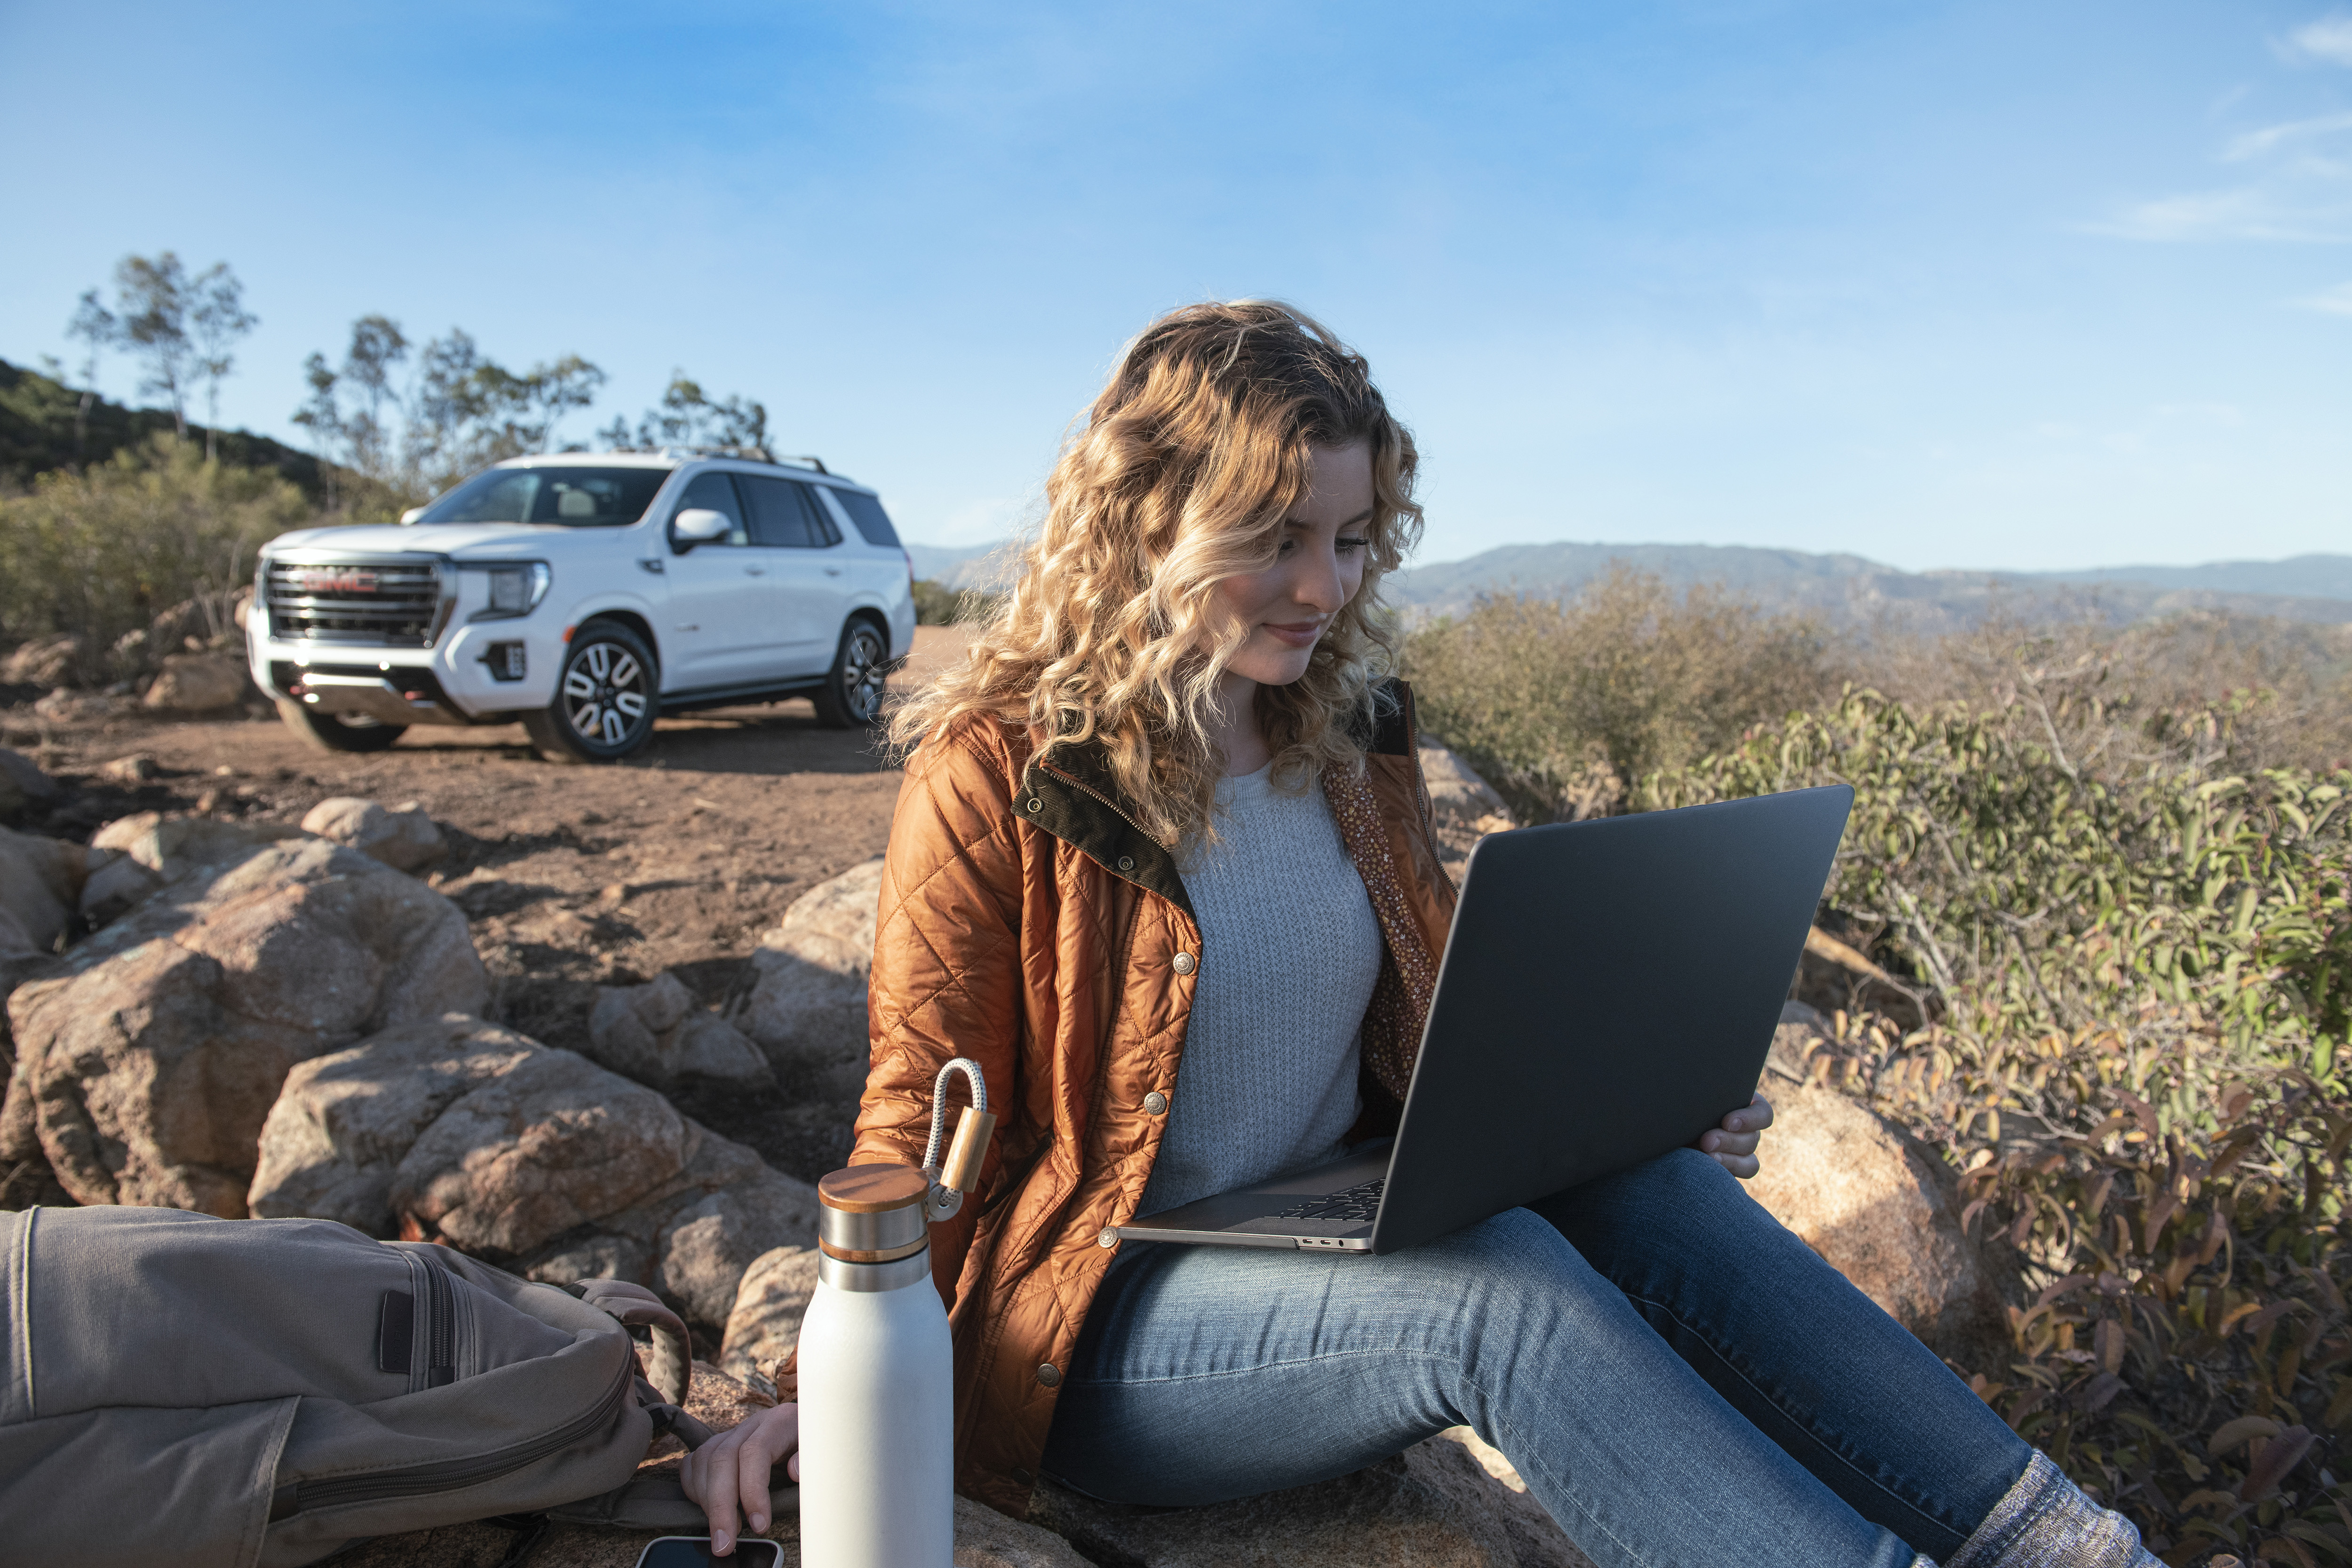 GMC Offers Free 30-Day WIFI to Limited Number of Eligible, Existing Customers Who Sign Up By July 4th